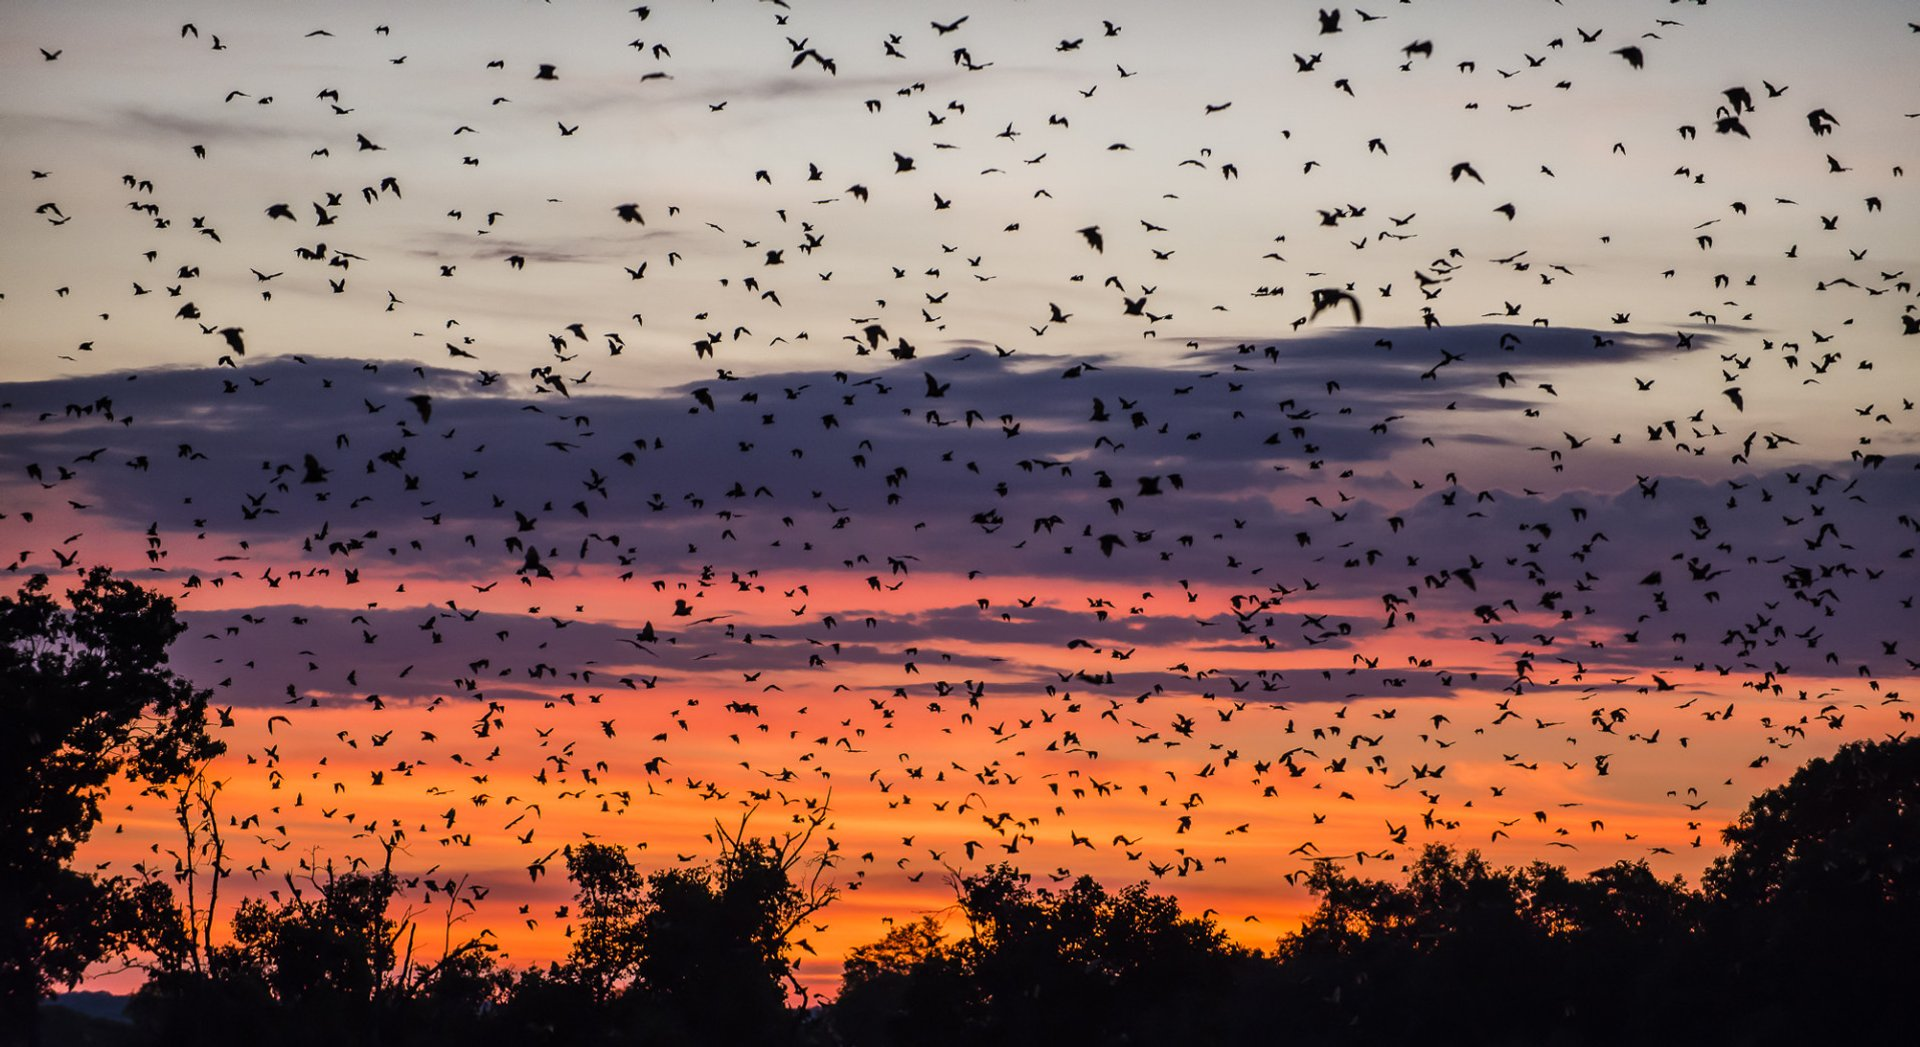 Bat Migration in Zambia 2020 - Best Time